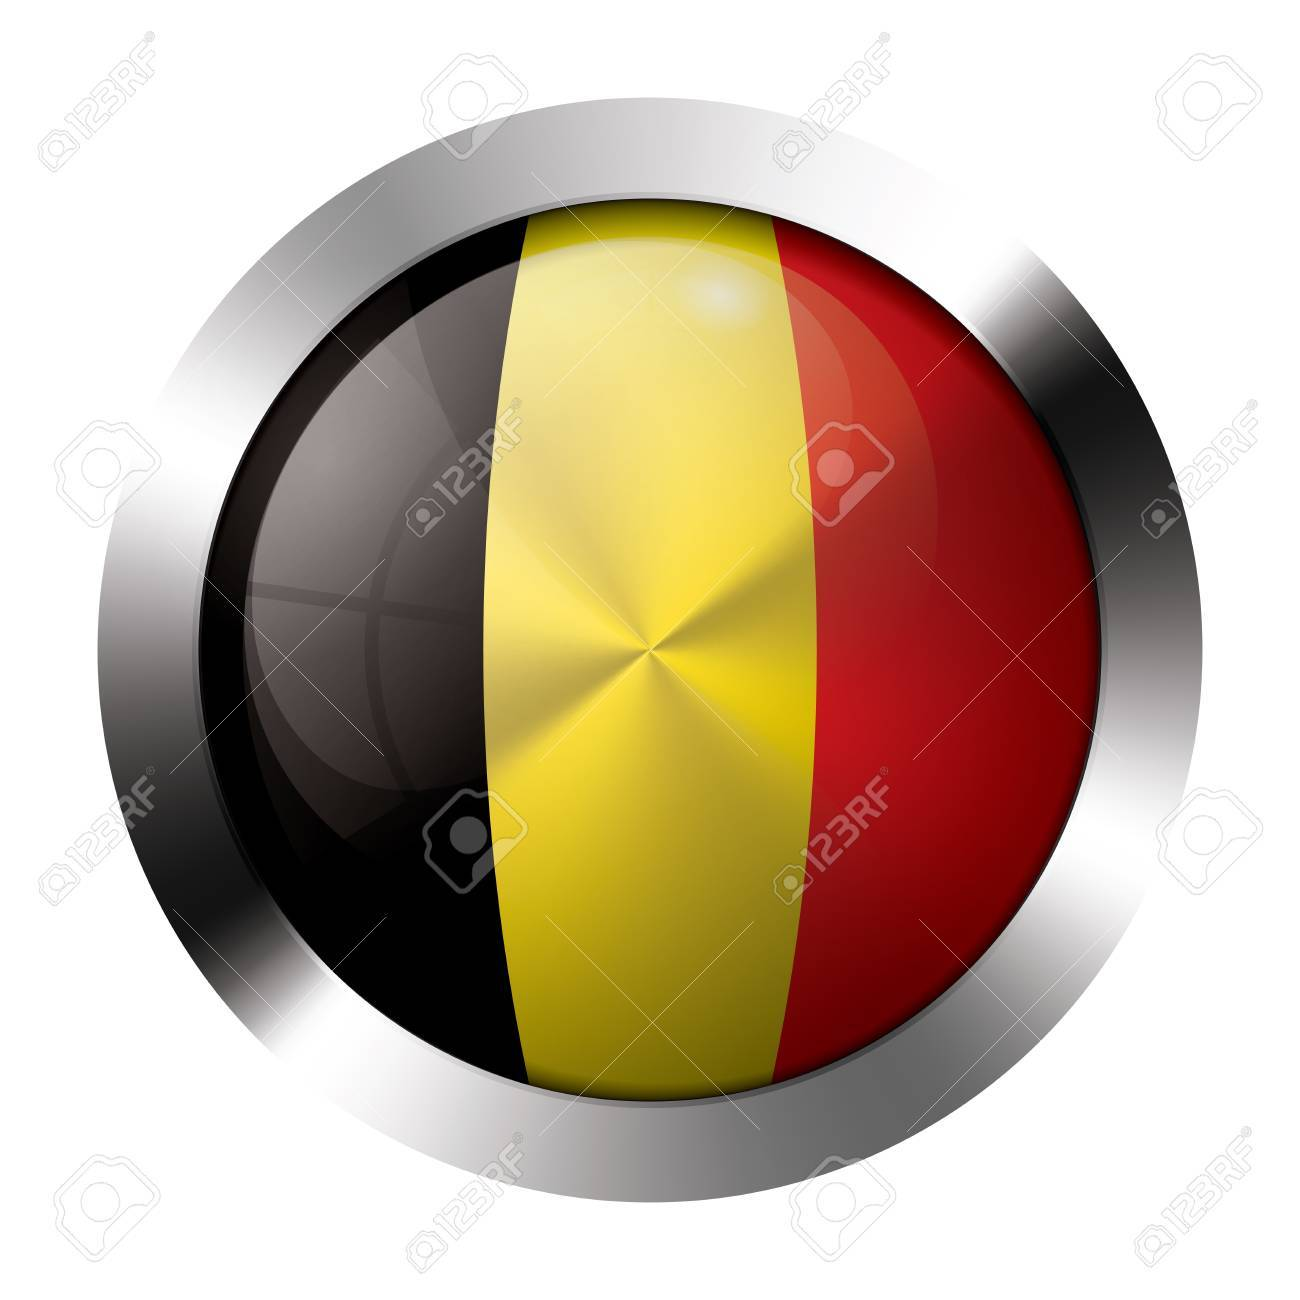 Round shiny metal button with flag of belgium europe Stock Vector - 15624860